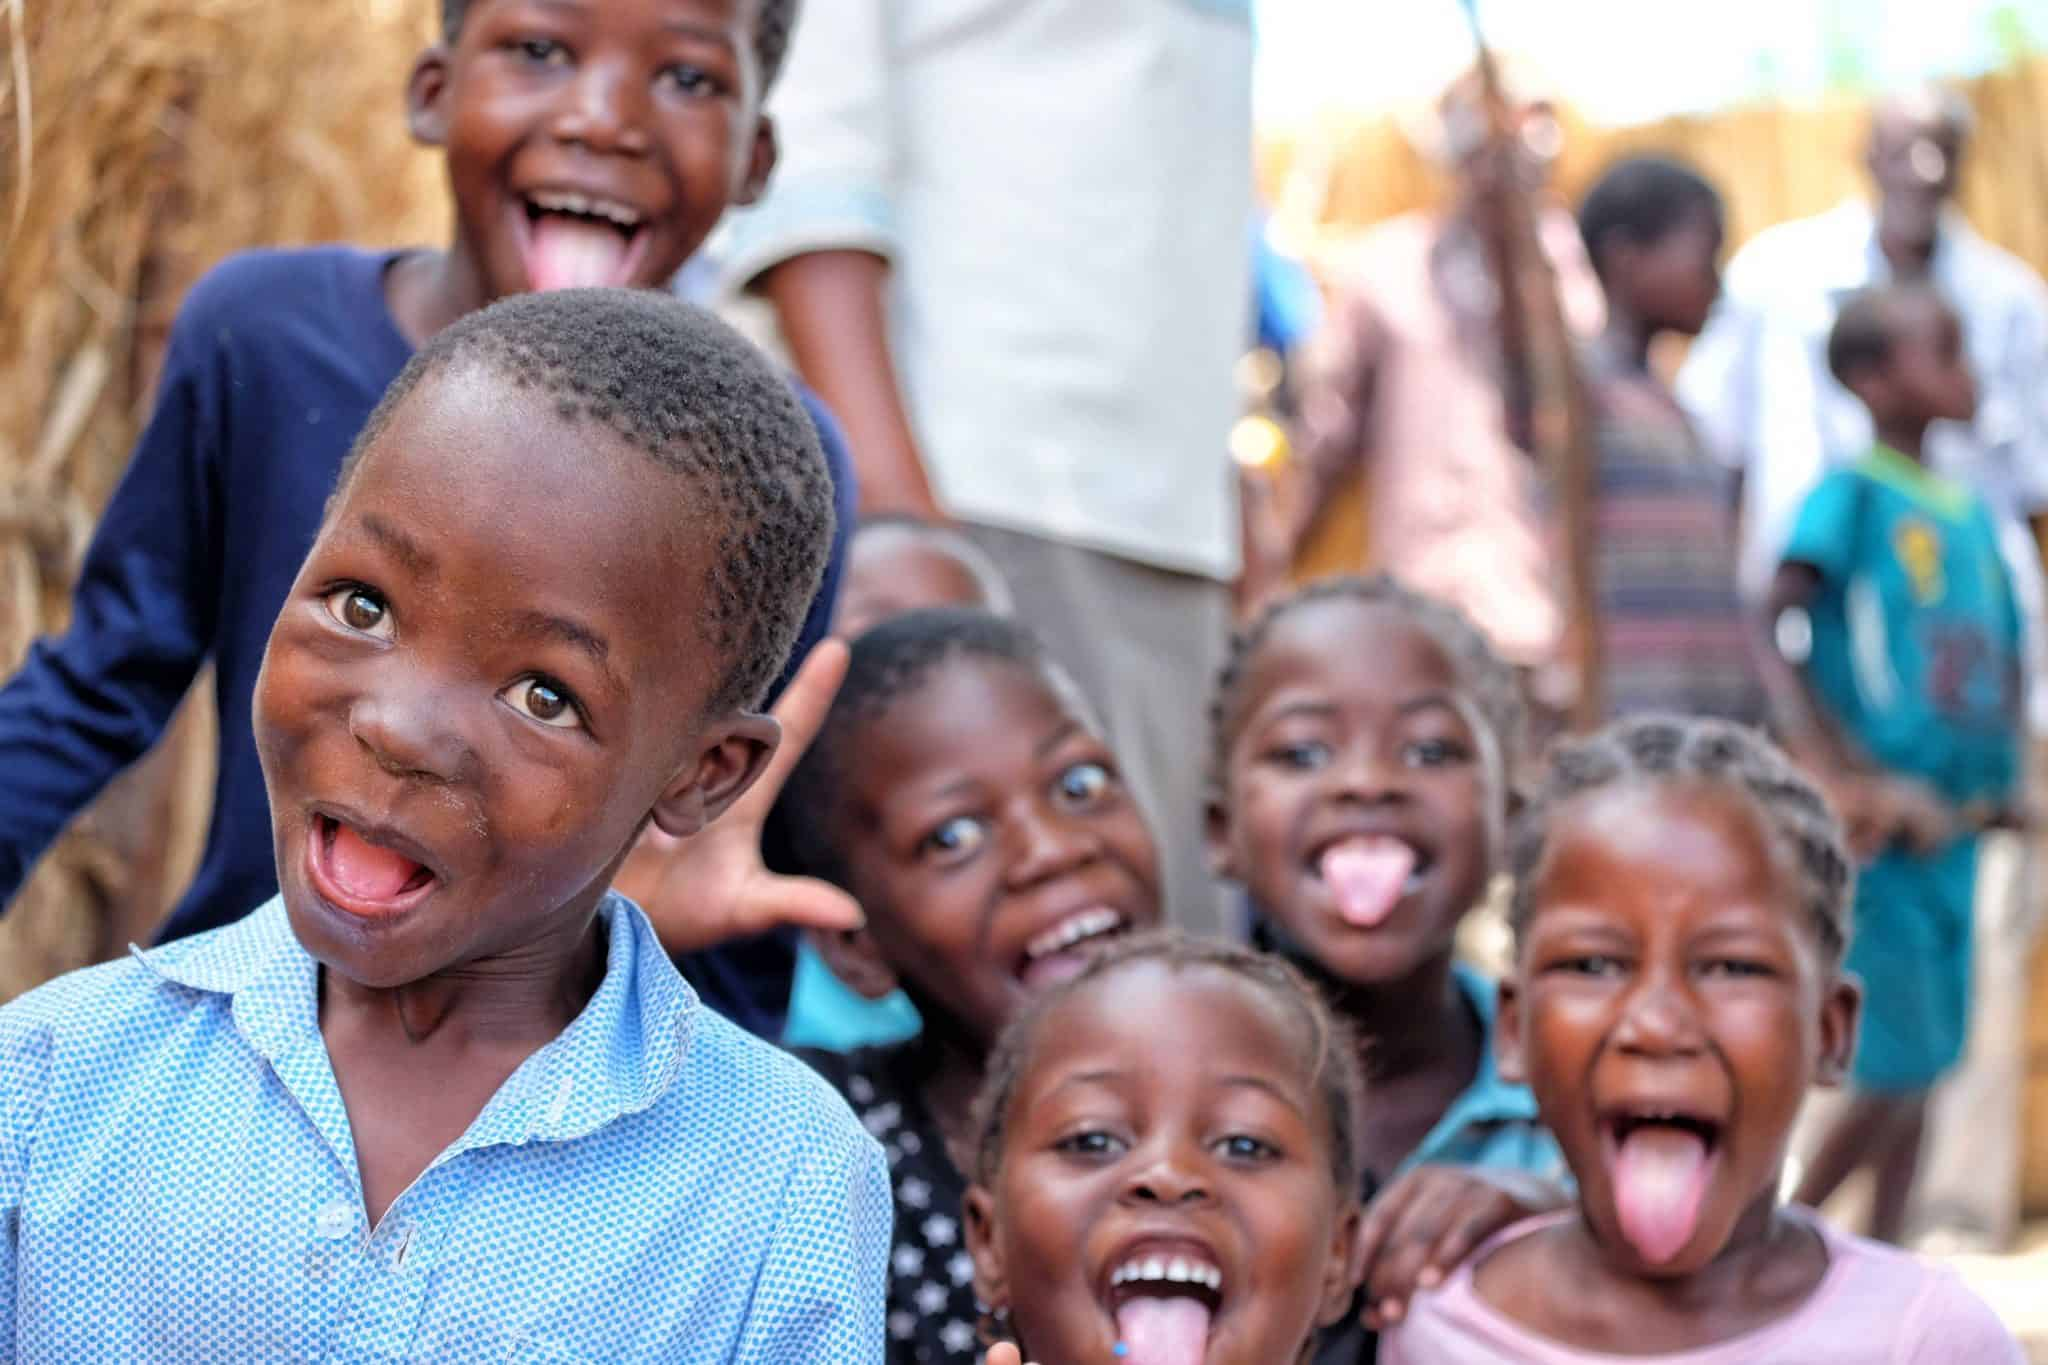 Funny Faces in Namibian Village